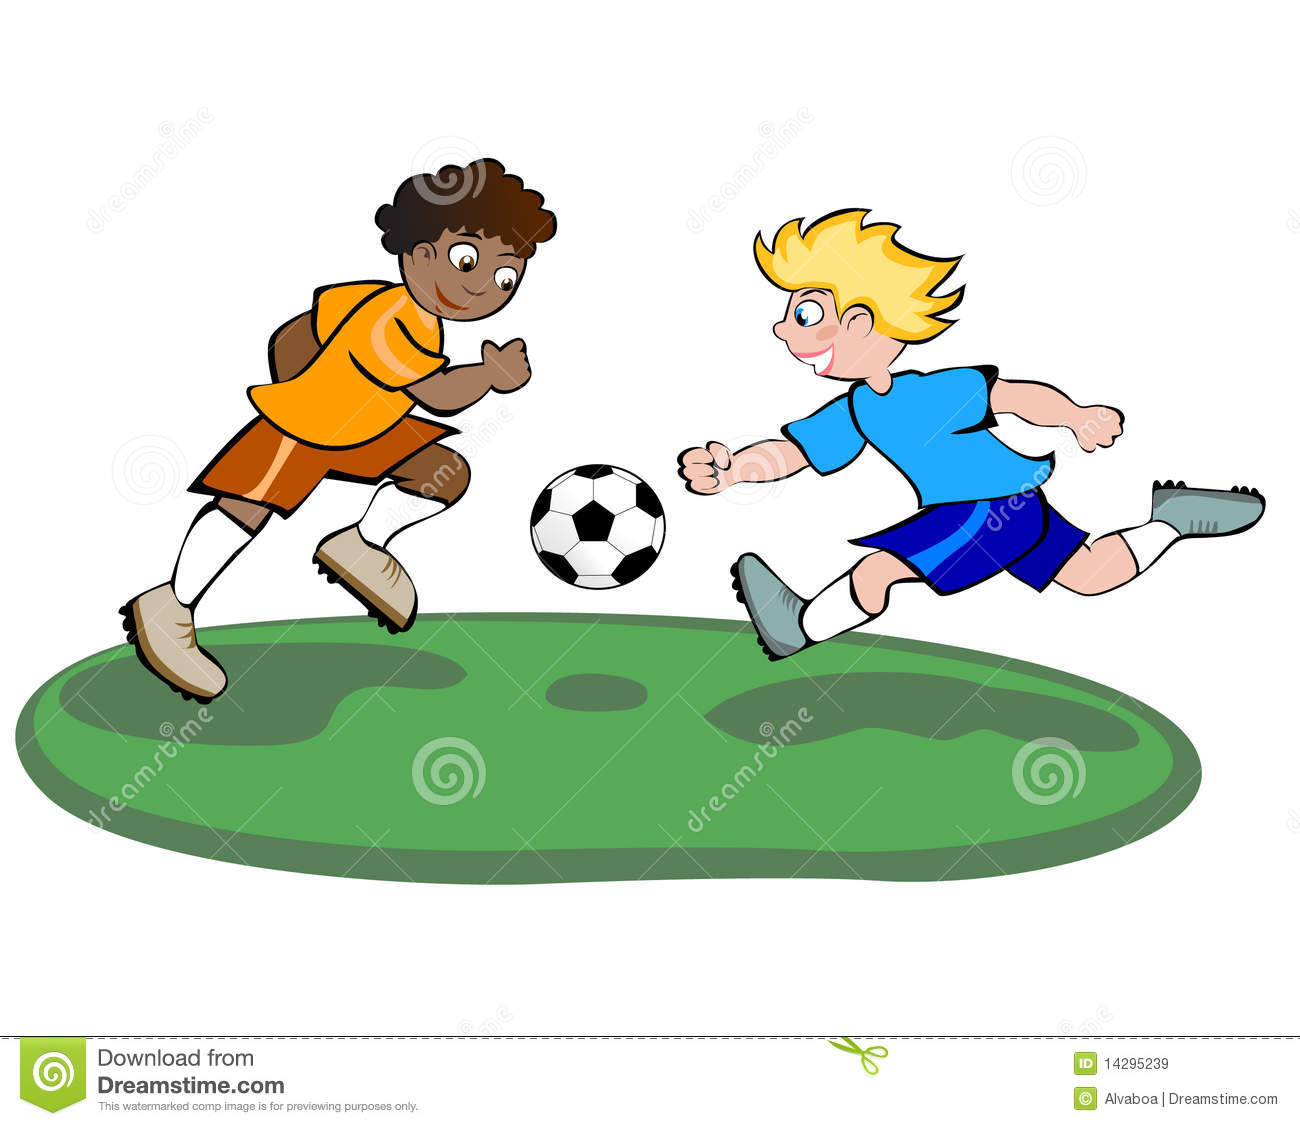 free clip art football game - photo #15